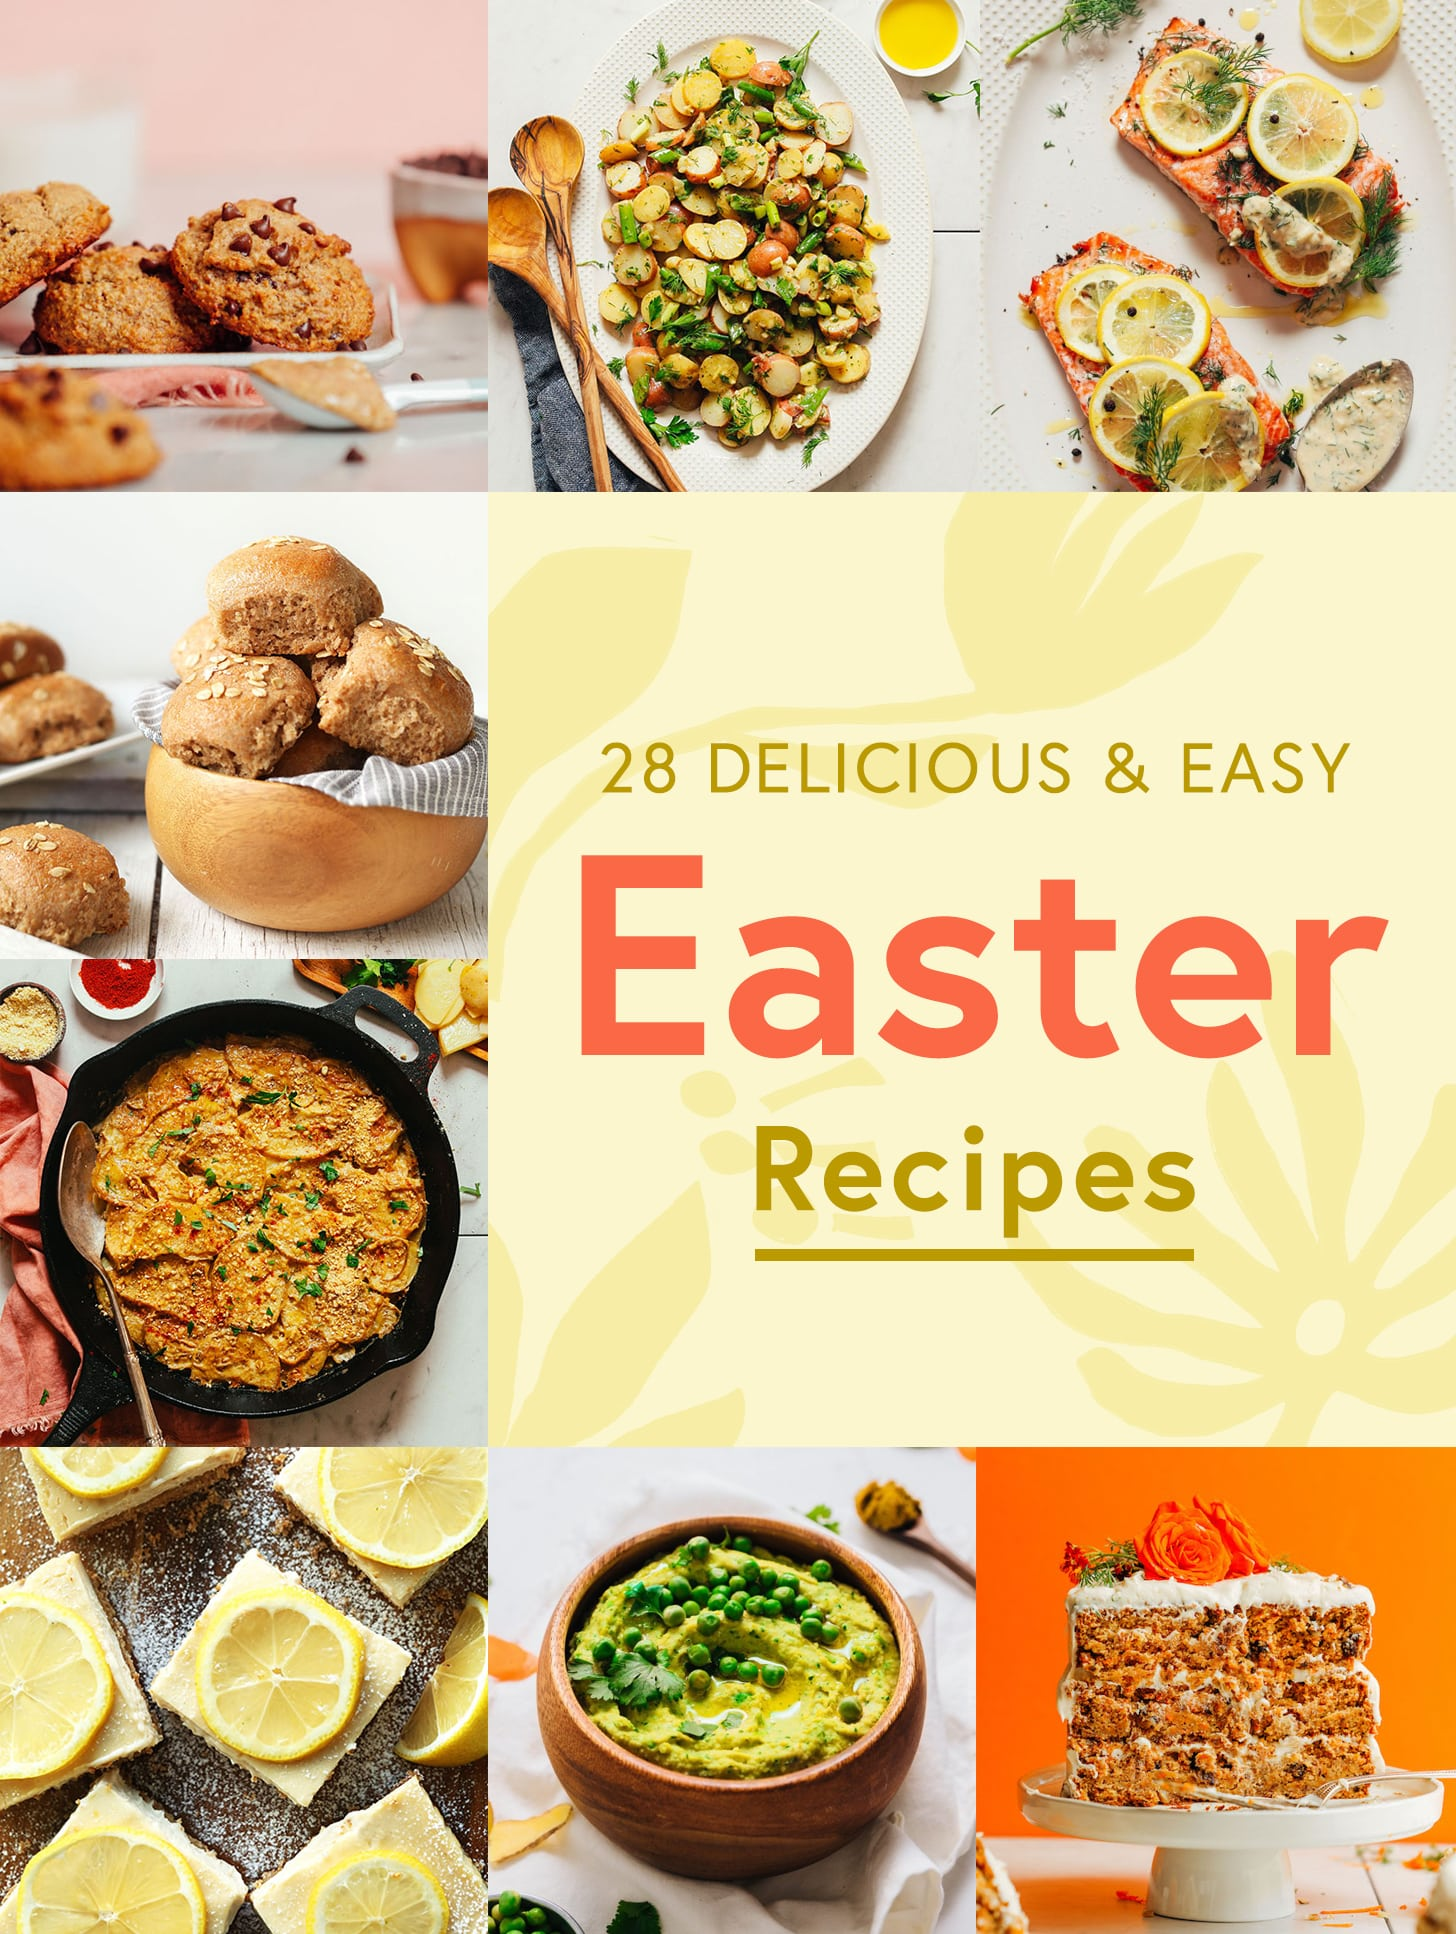 Cookies, potato salad, spelt rolls, and other Easter recipe ideas